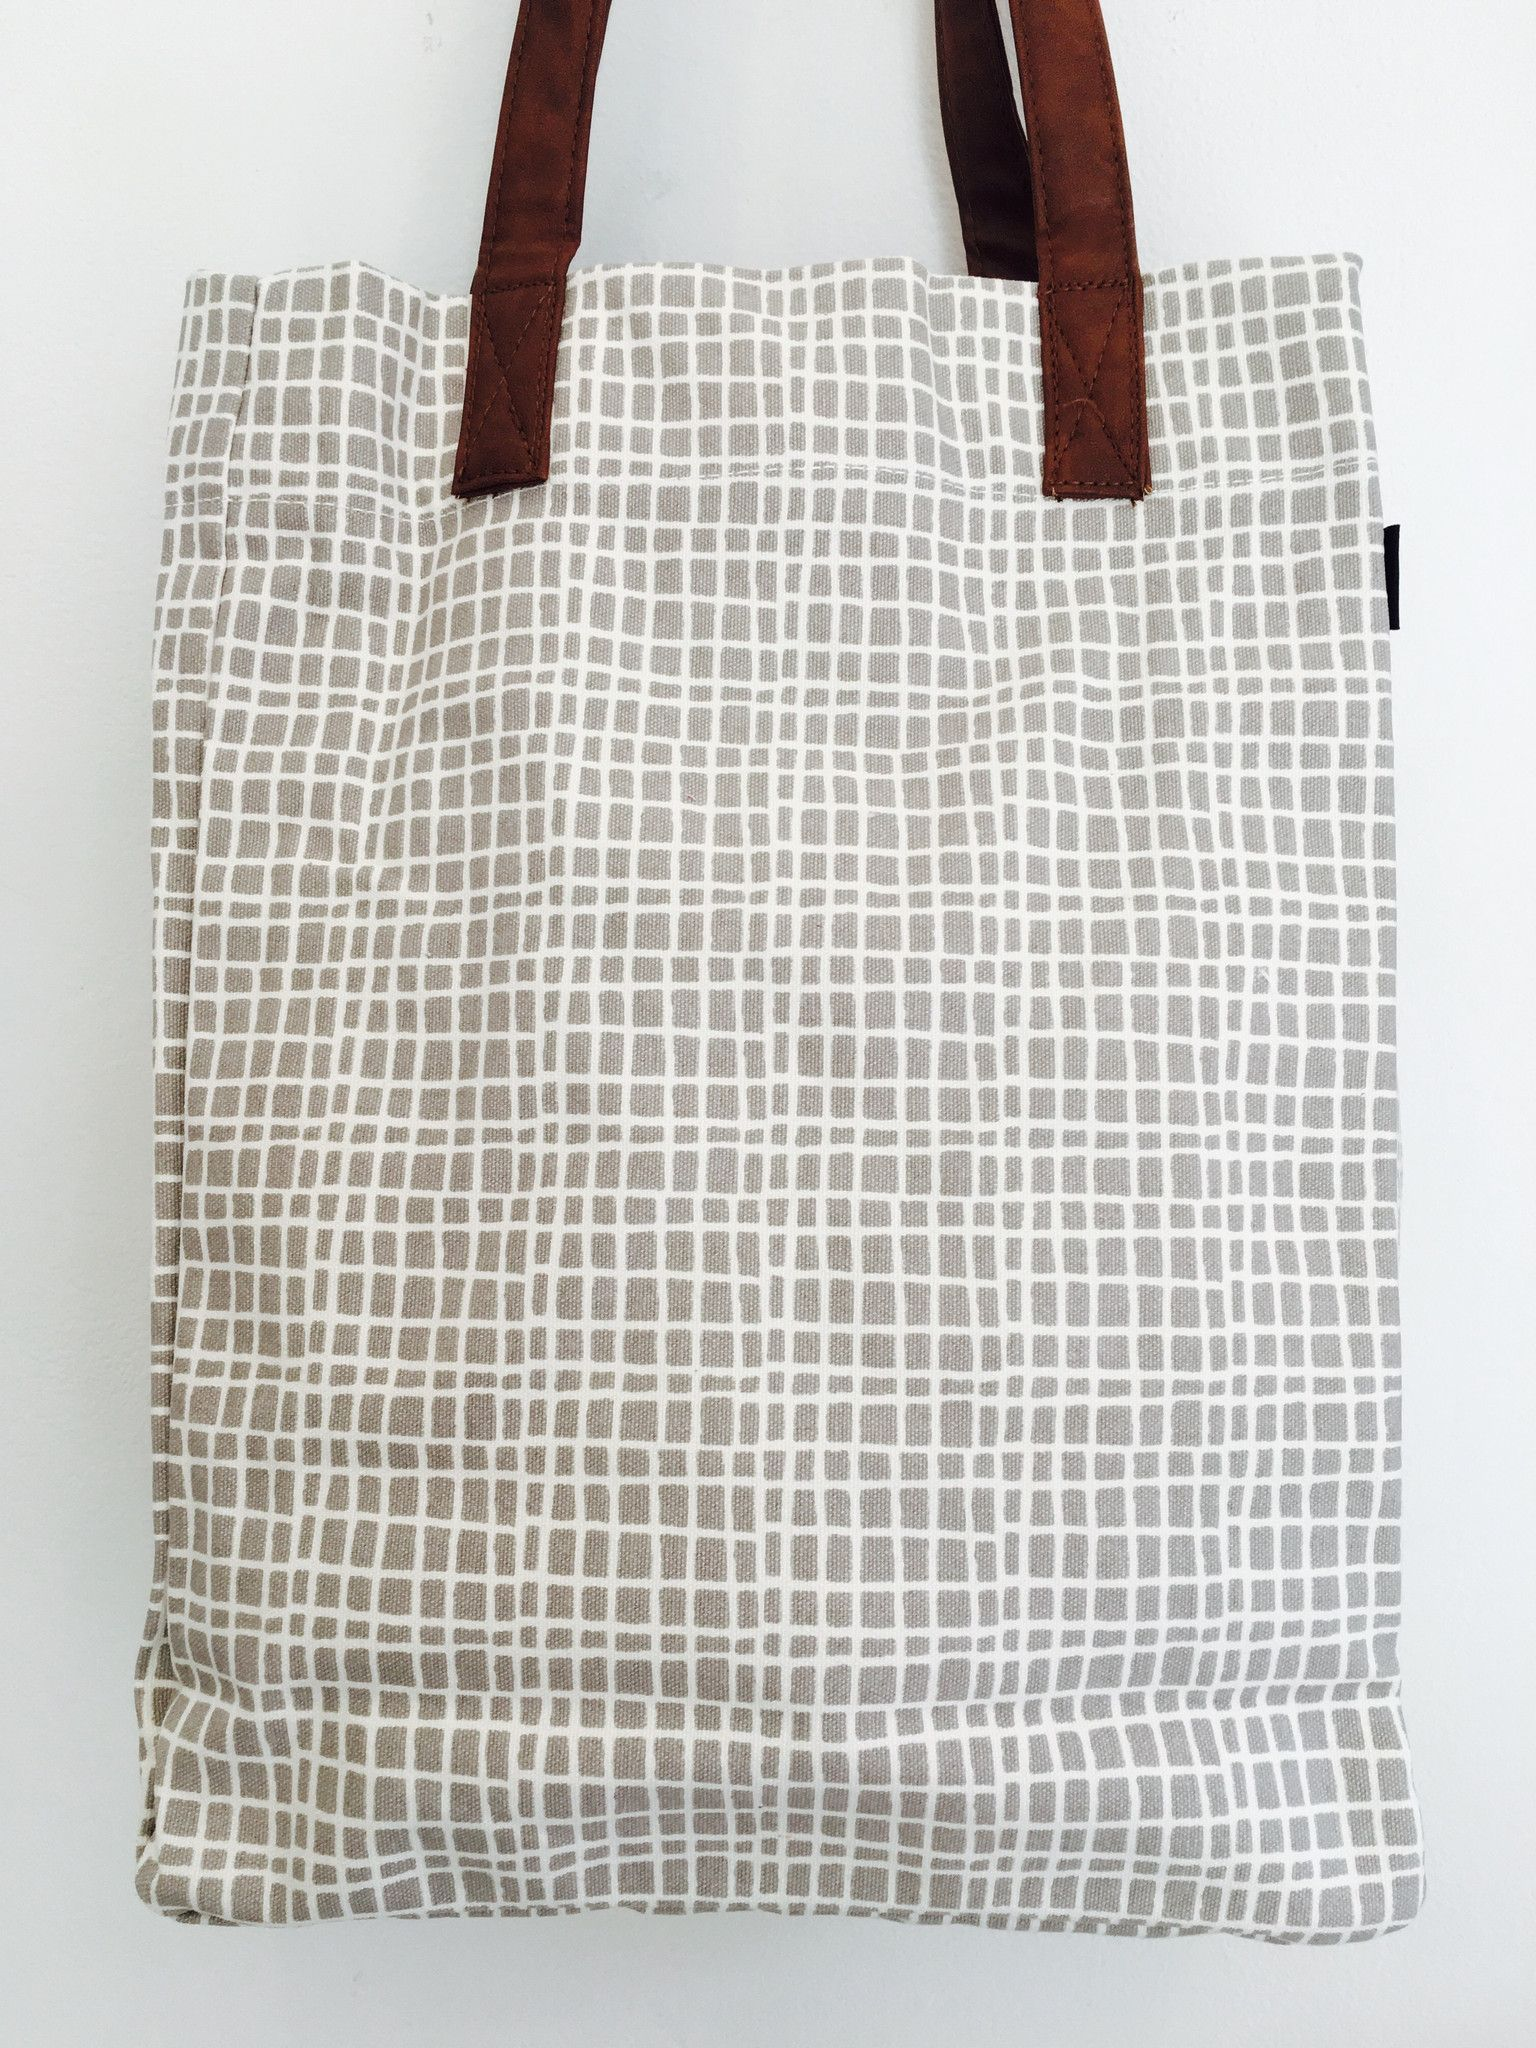 Market tote: Grey and white grid